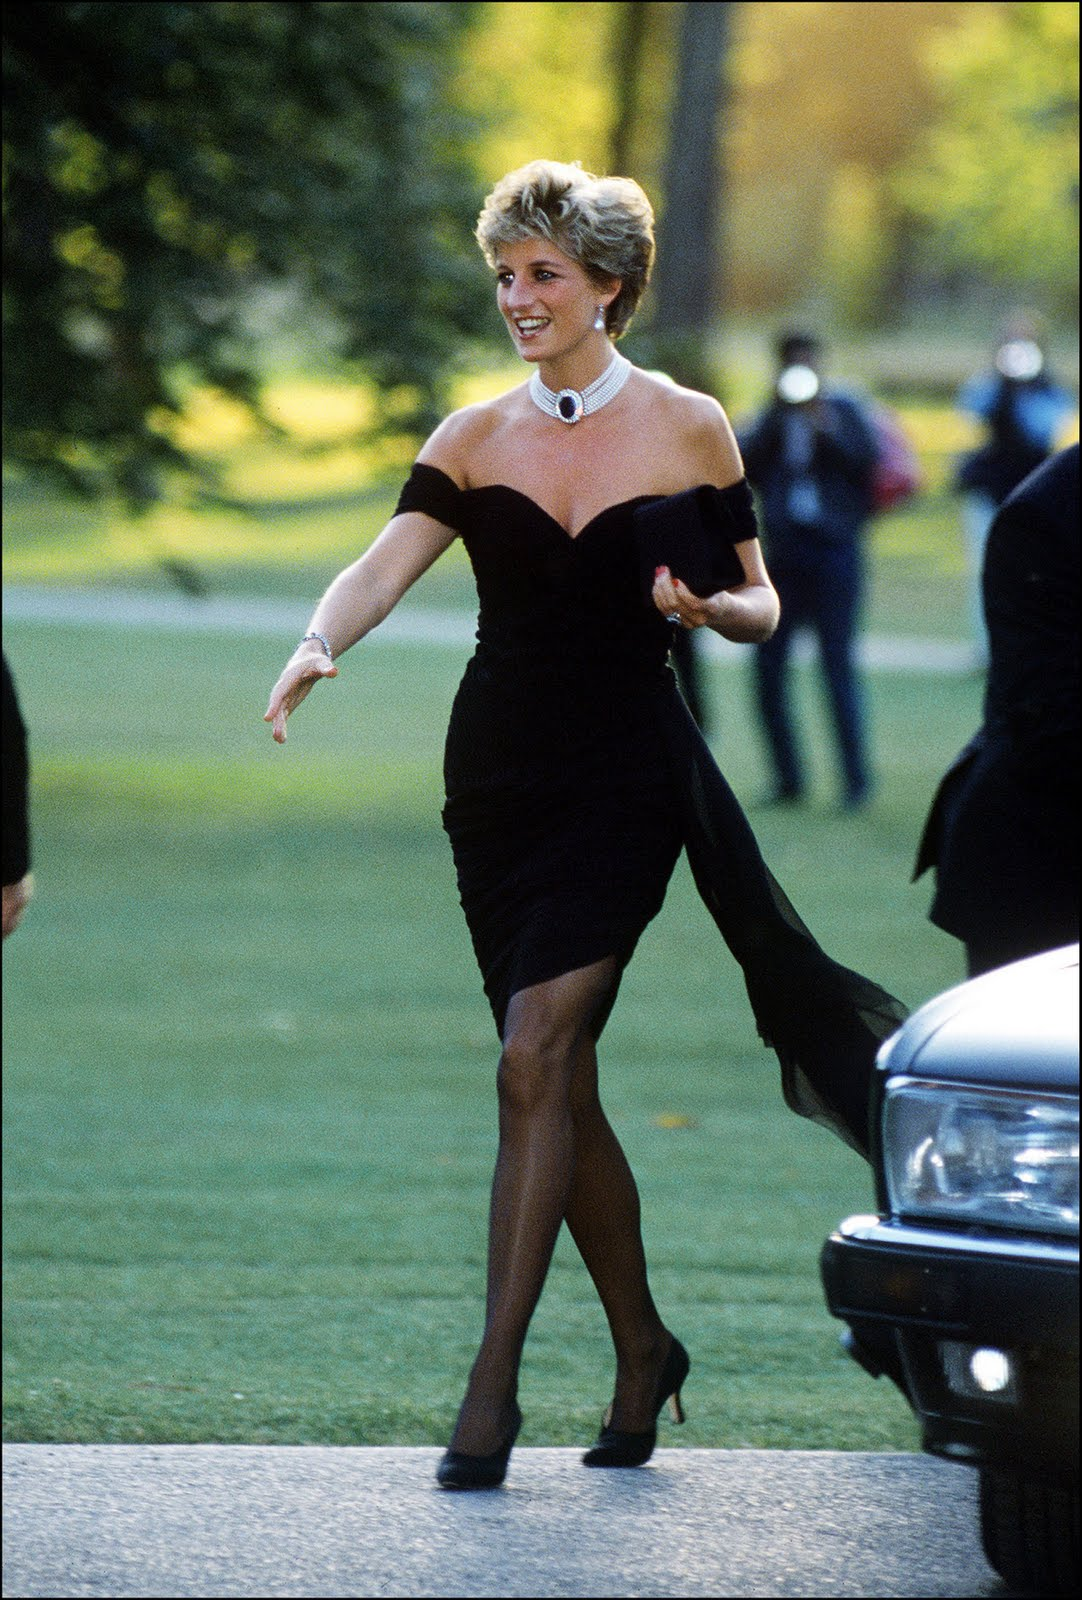 http://1.bp.blogspot.com/-eZsSppKO99M/Tg8gOdEi0kI/AAAAAAAAPNE/Fkqg7EAXfeo/s1600/princess_diana_cocktail_dress.jpg